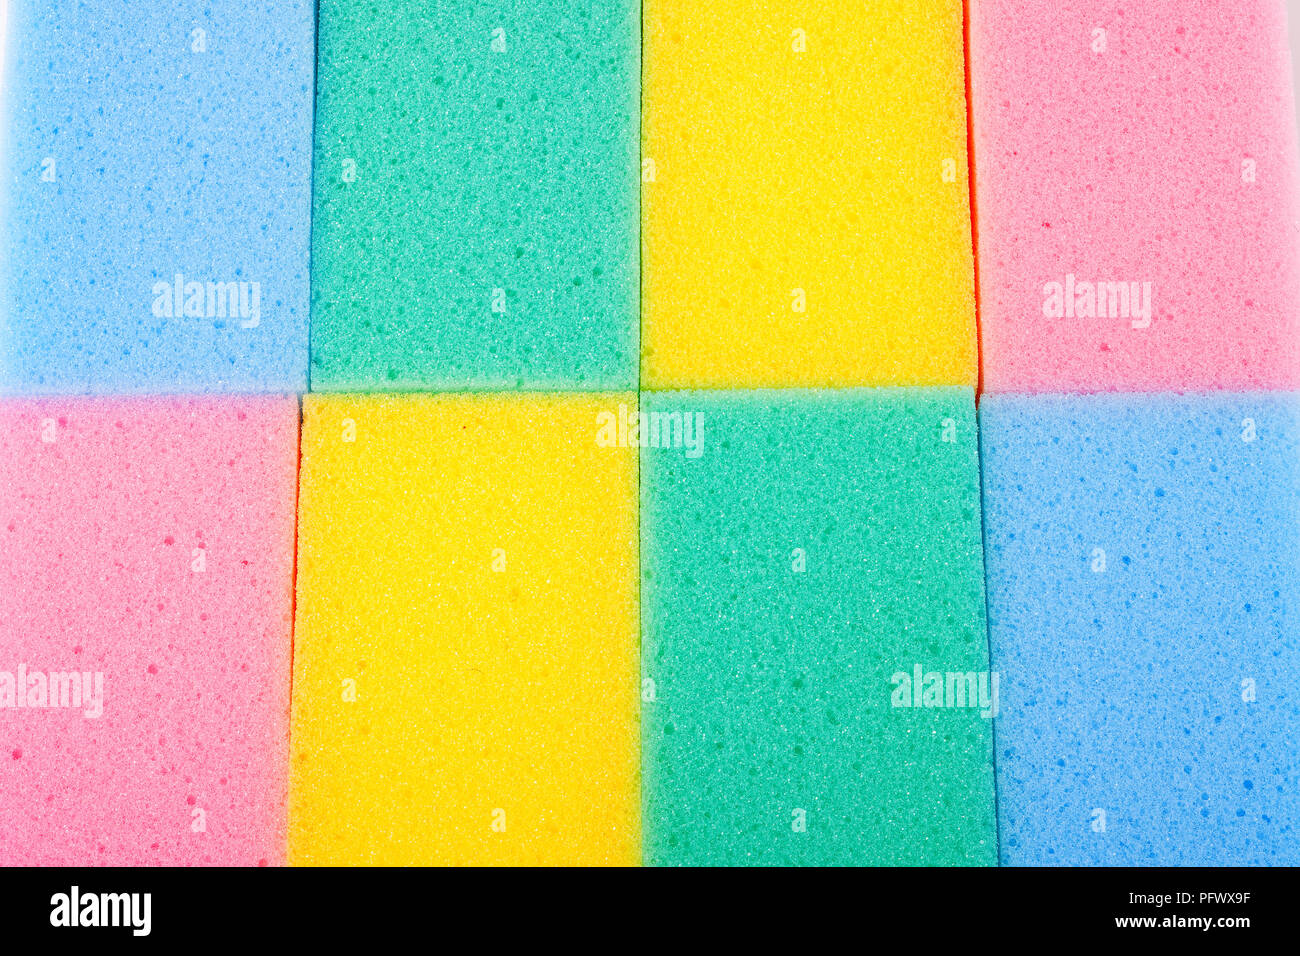 Background of colored kitchen sponges for washing dishes Stock Photo